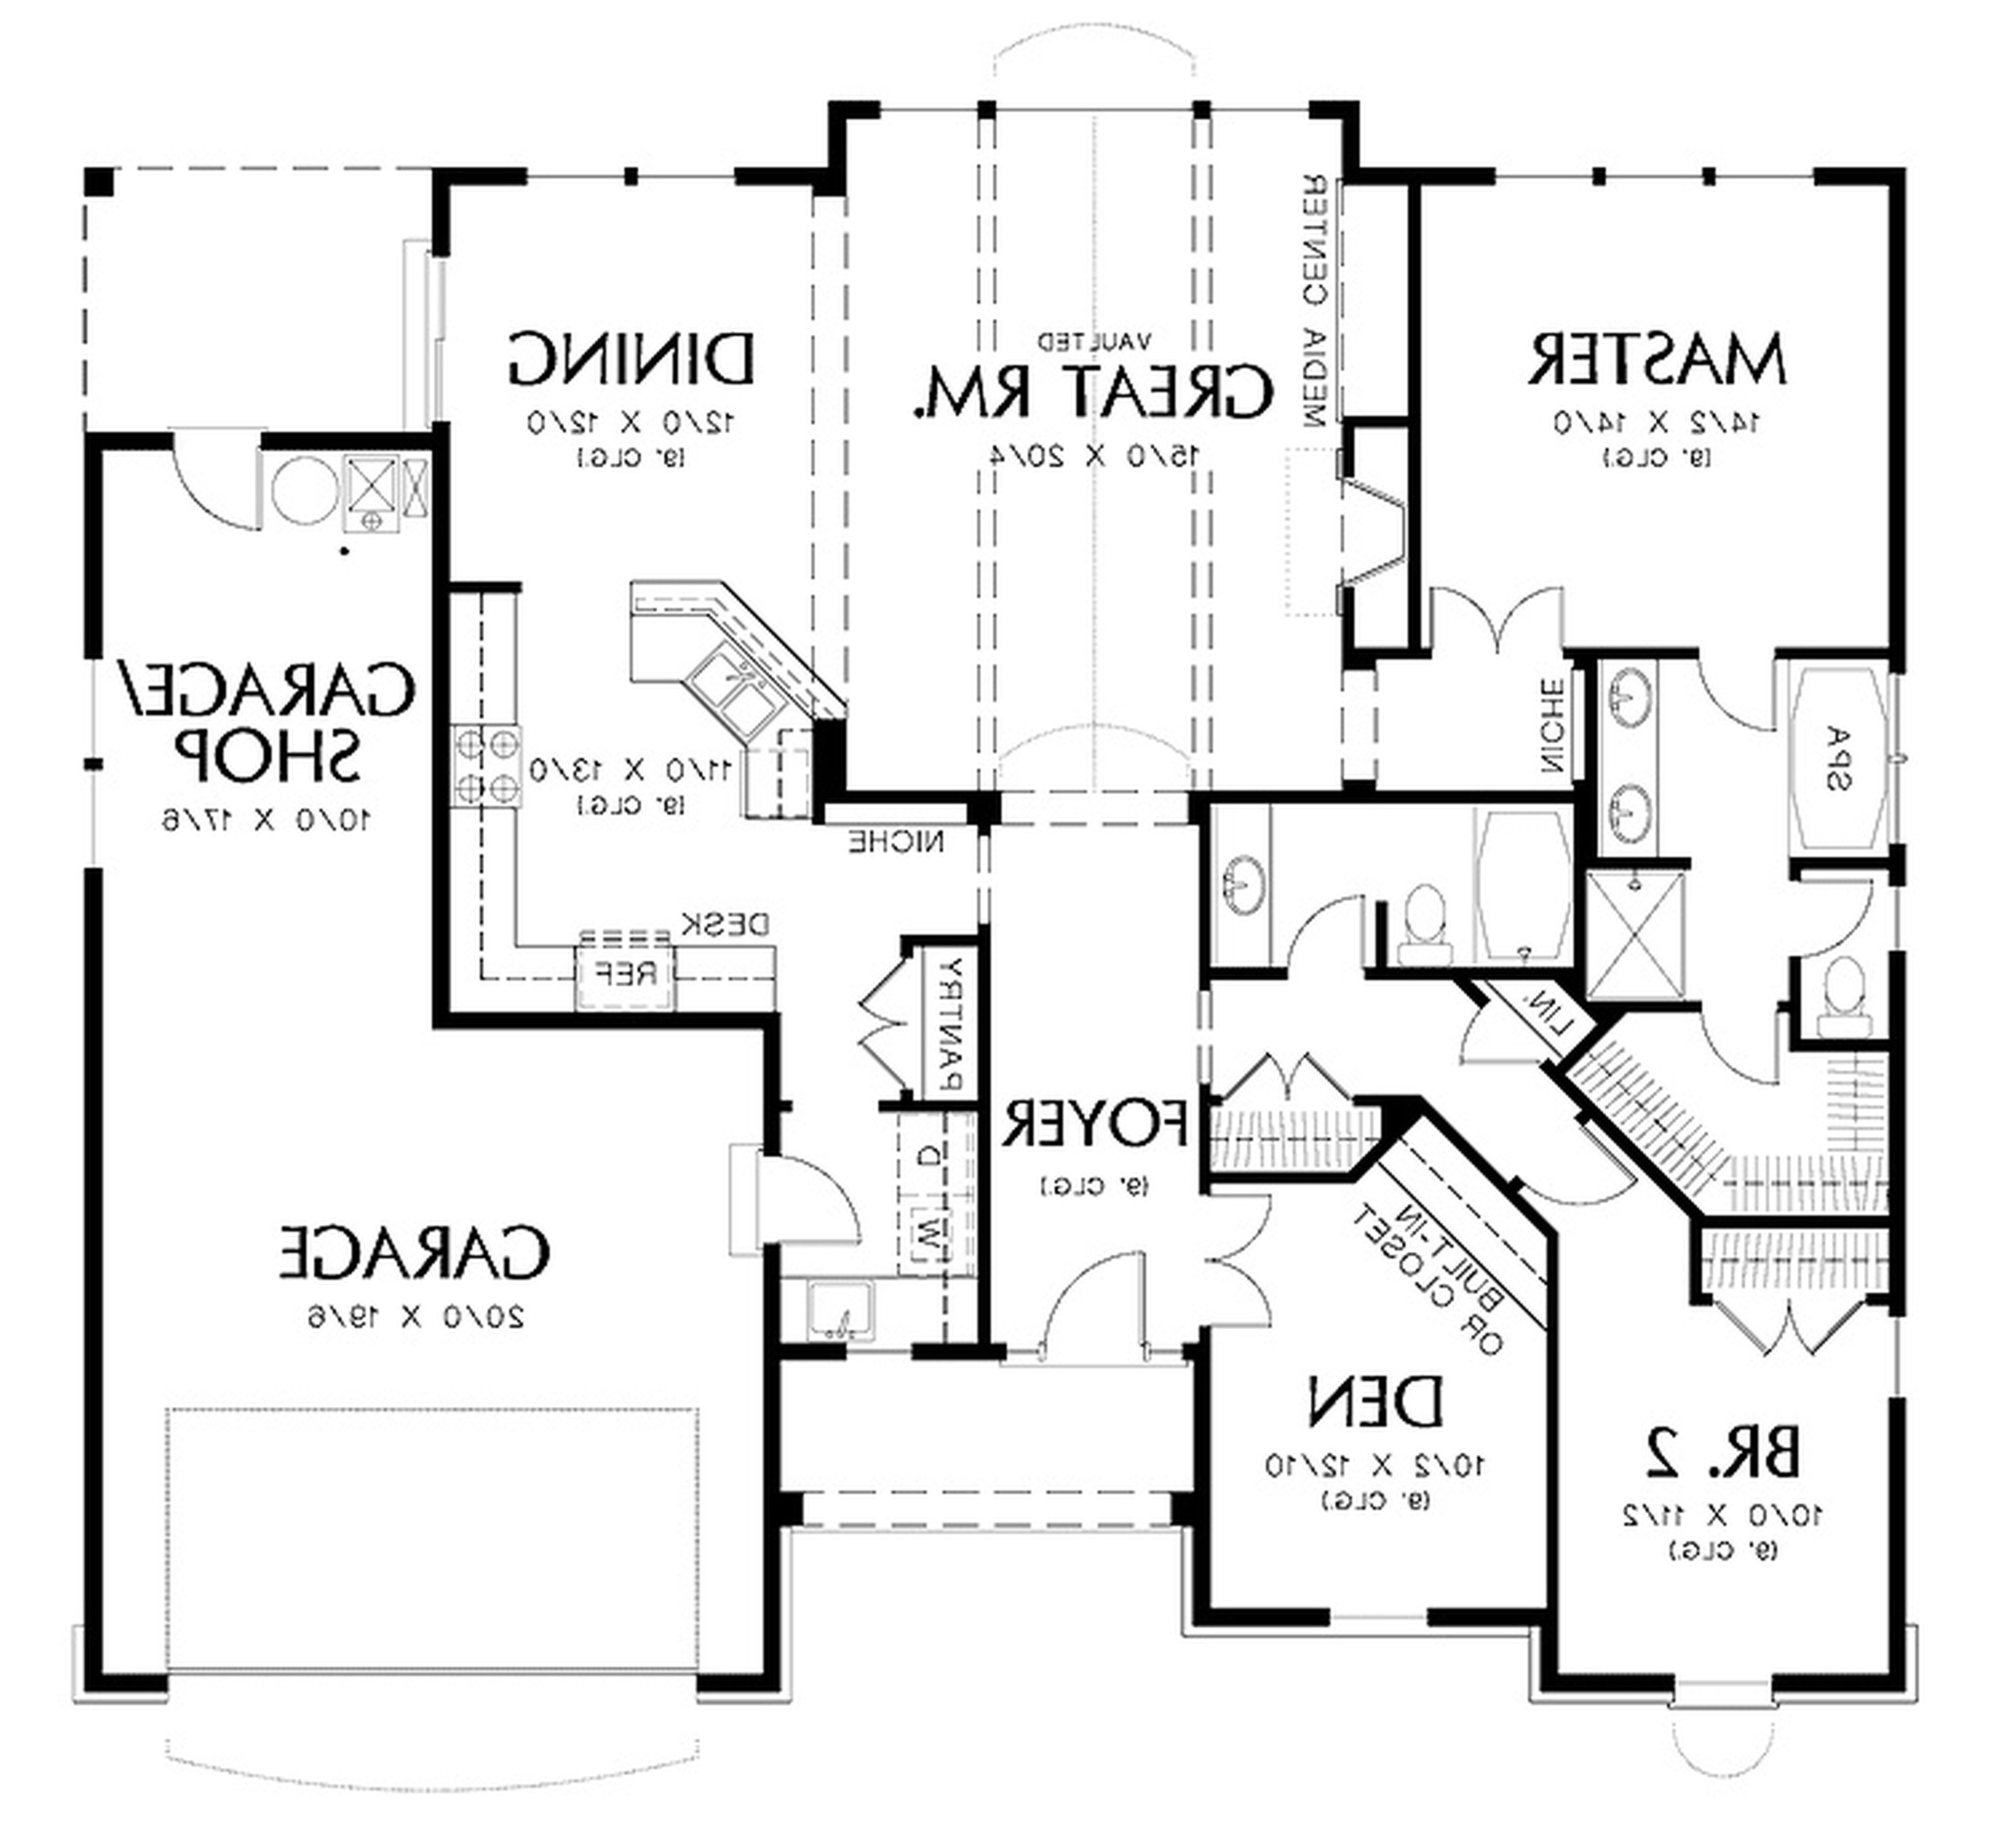 Drawn office software house Drawing ~ architectural House drawings